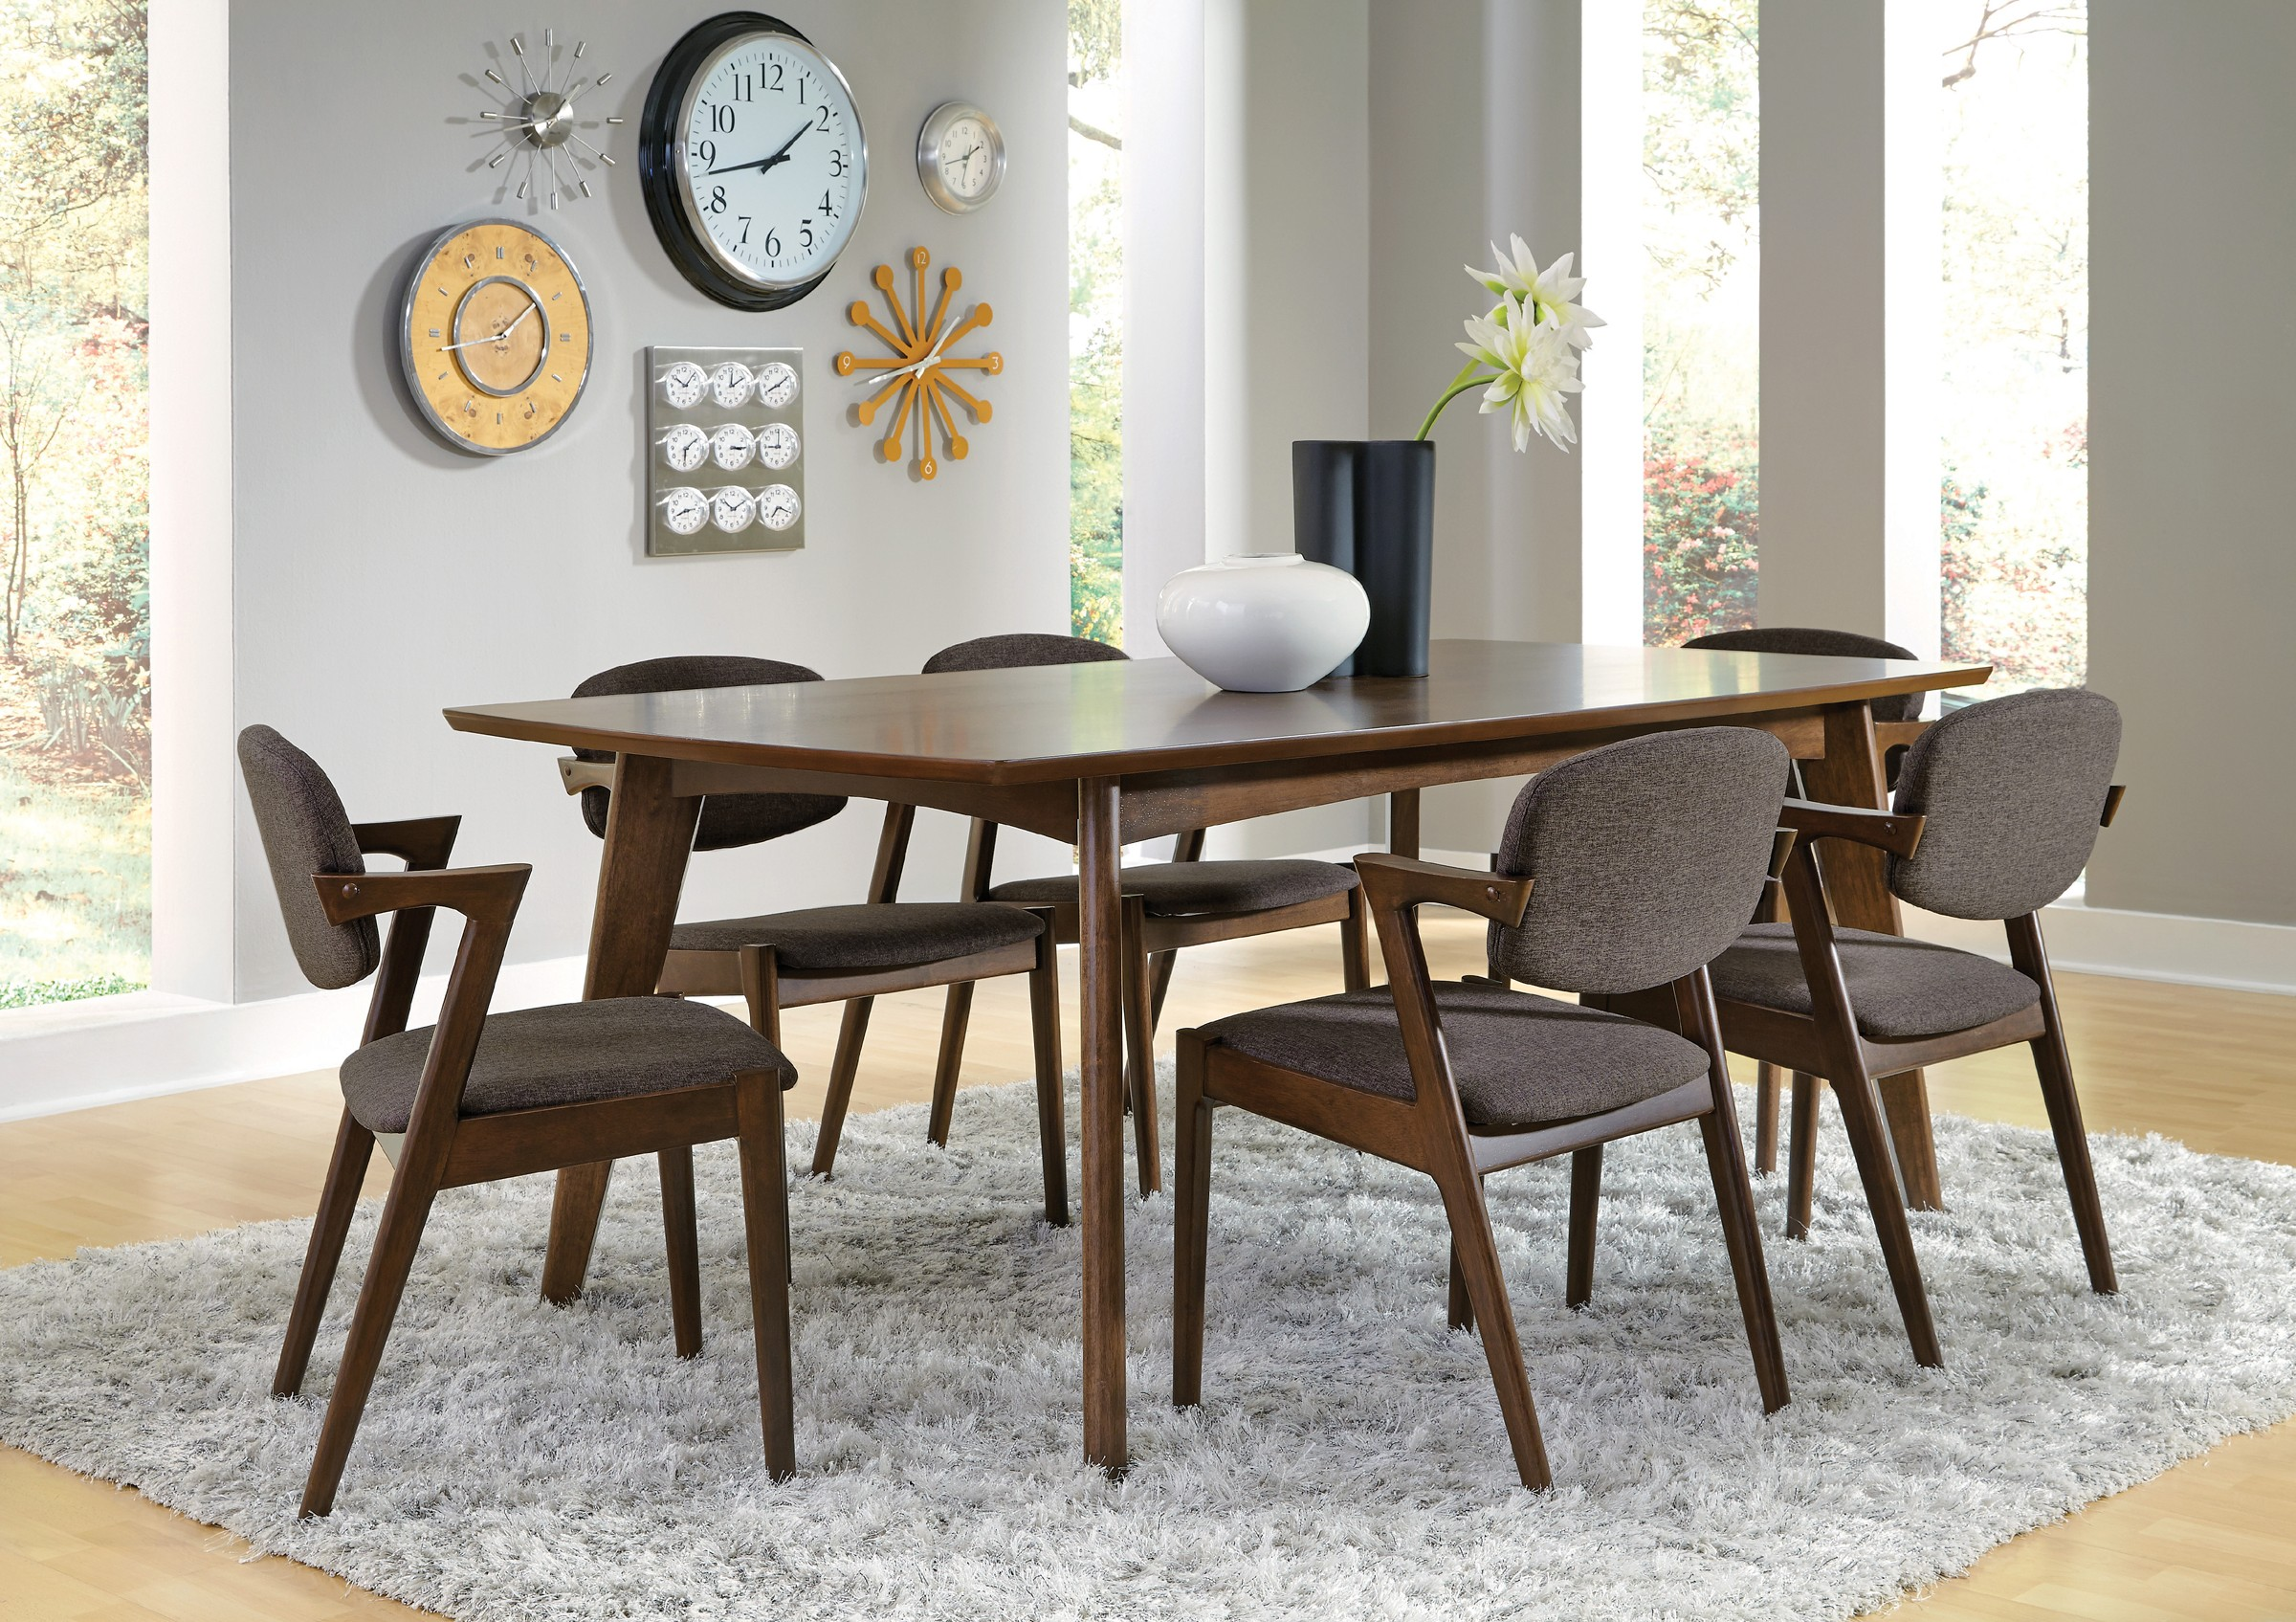 Malone 7 Piece Dining Room Set